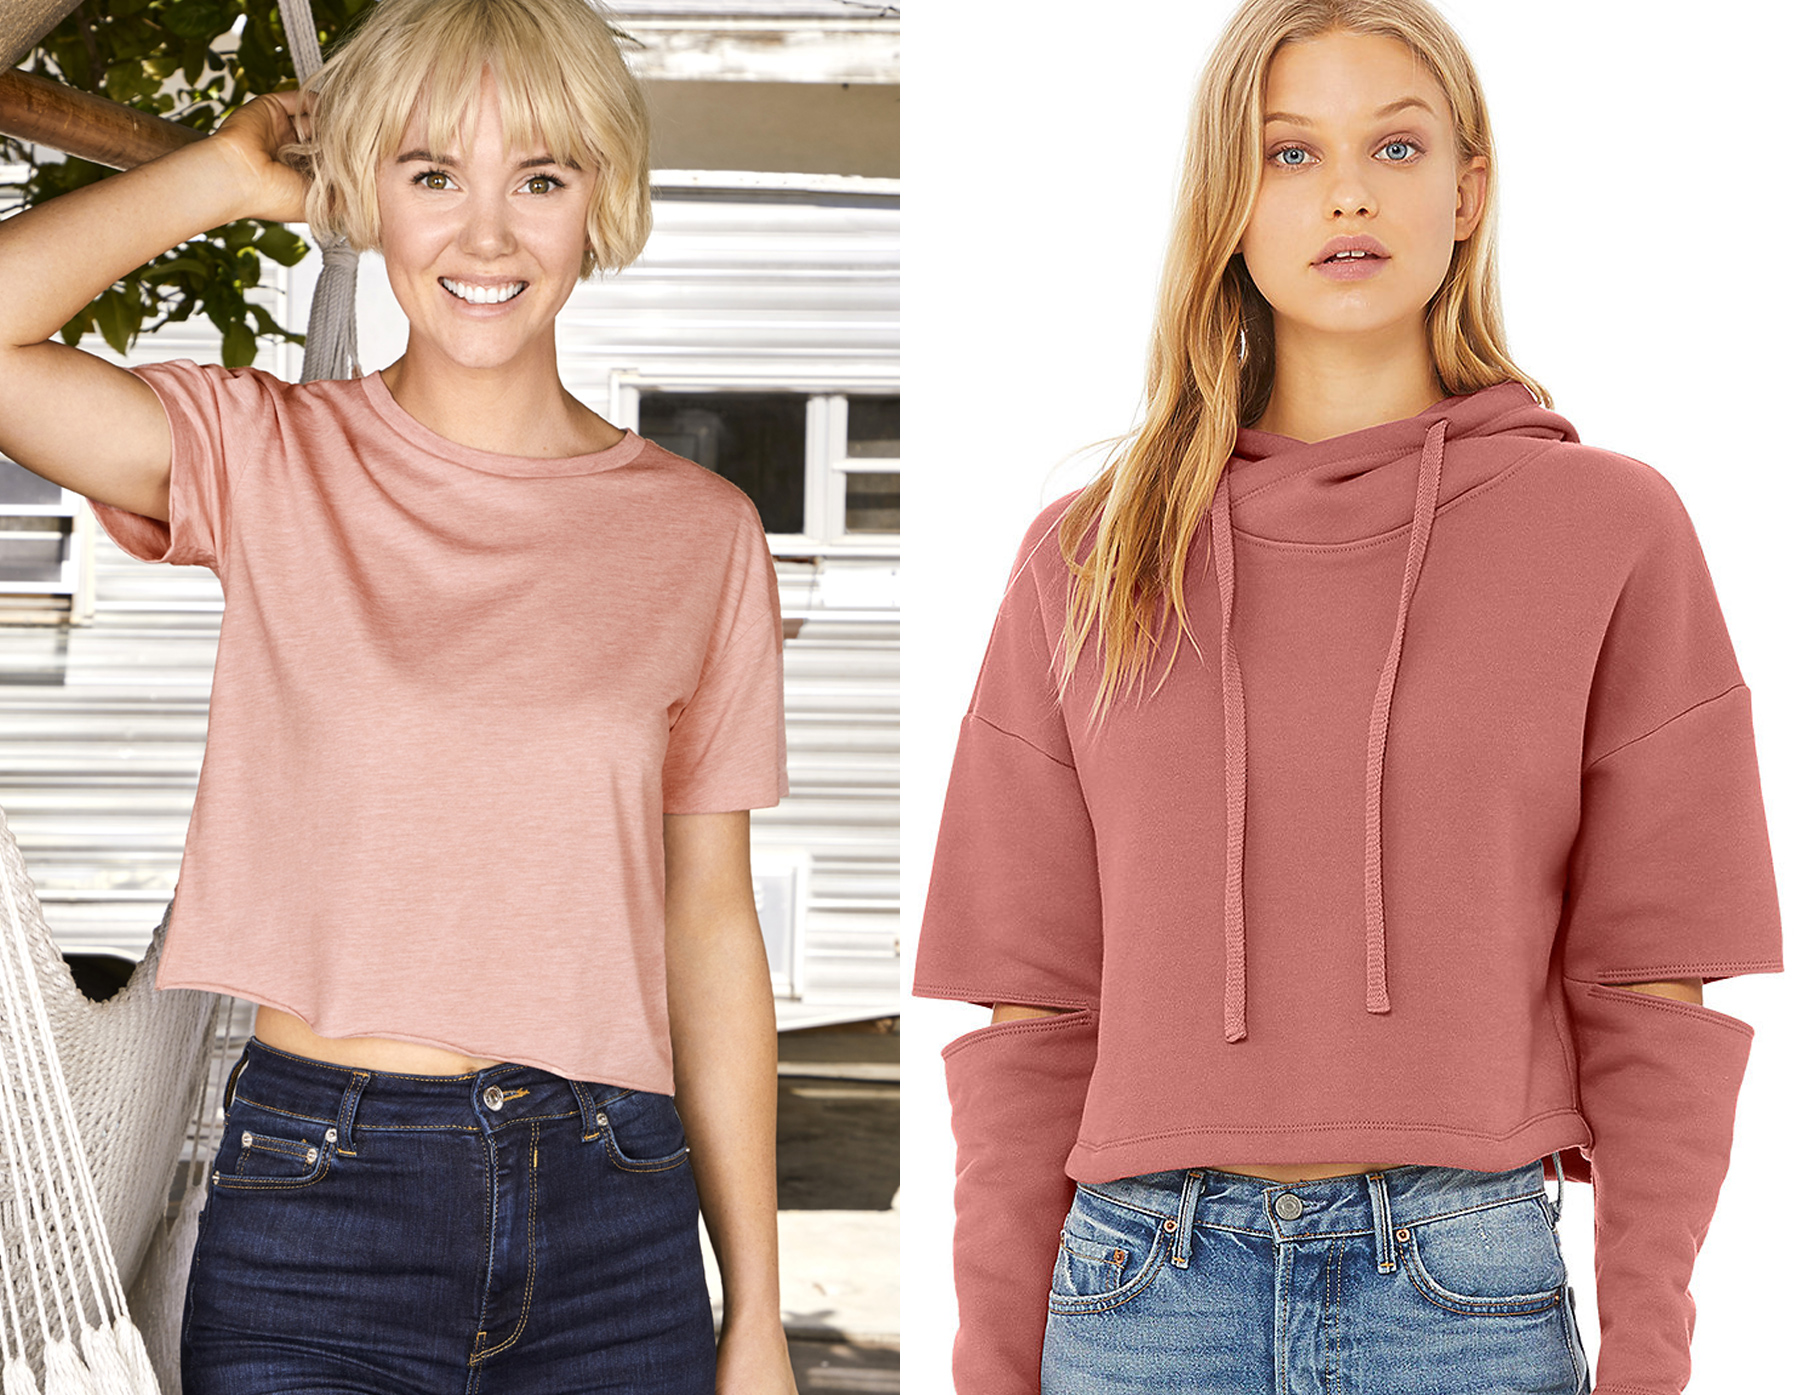 Next Level Apparel women's festival Cali crop—5080 (left)  and  Bella+Canvas fast fashion women's cut out fleece hoodie—7504 (right)